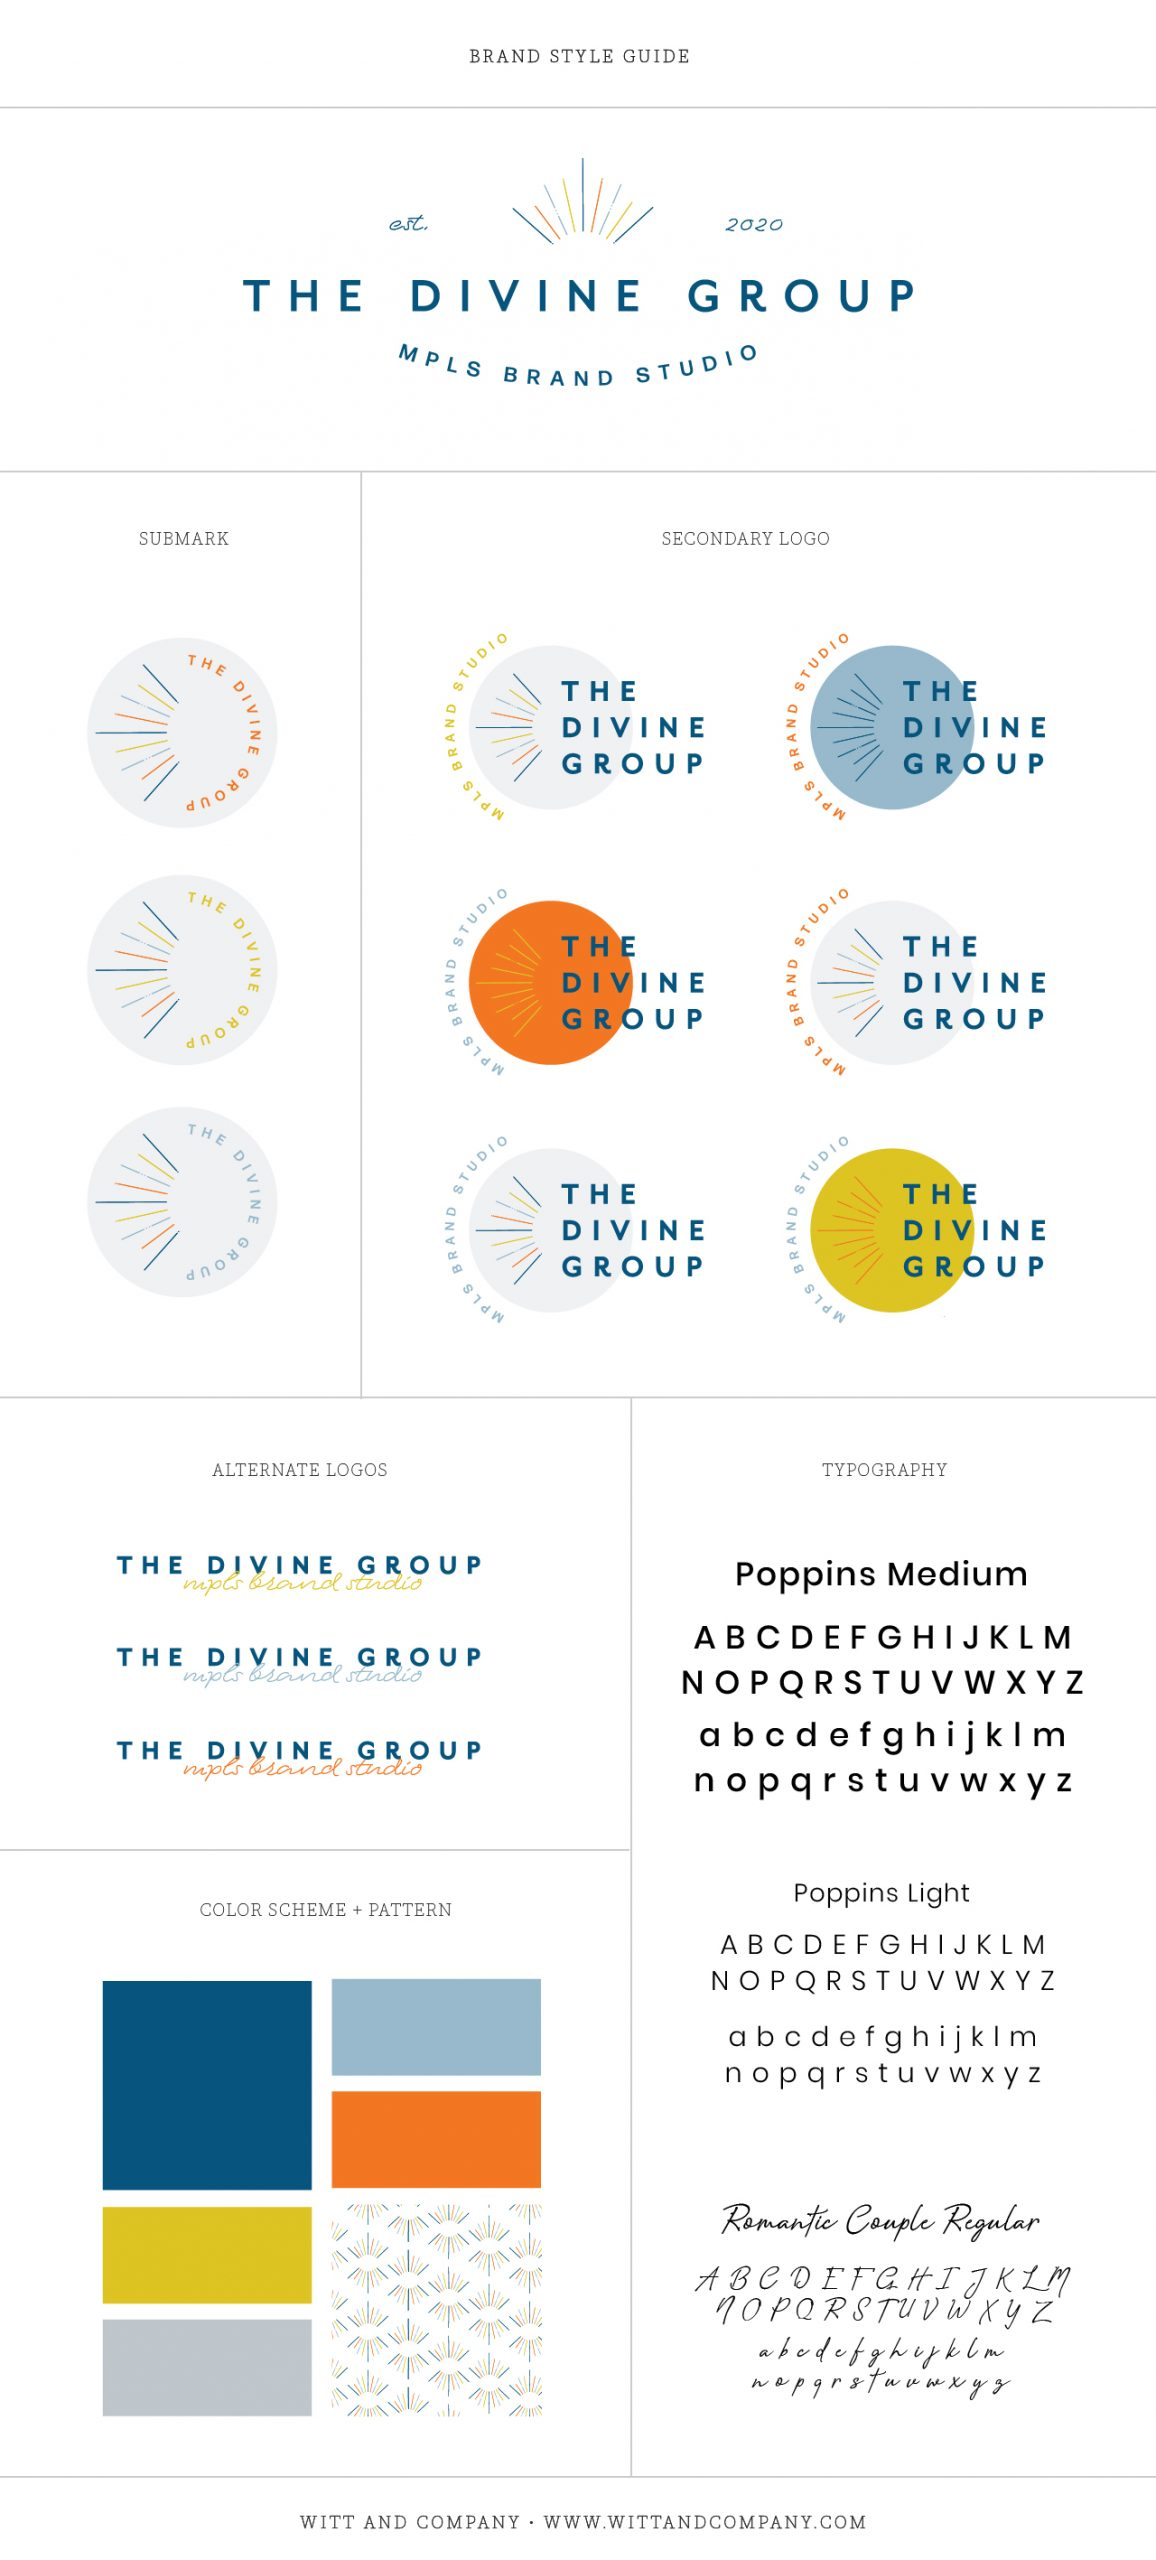 The Divine Group Style Guide | Witt and Company